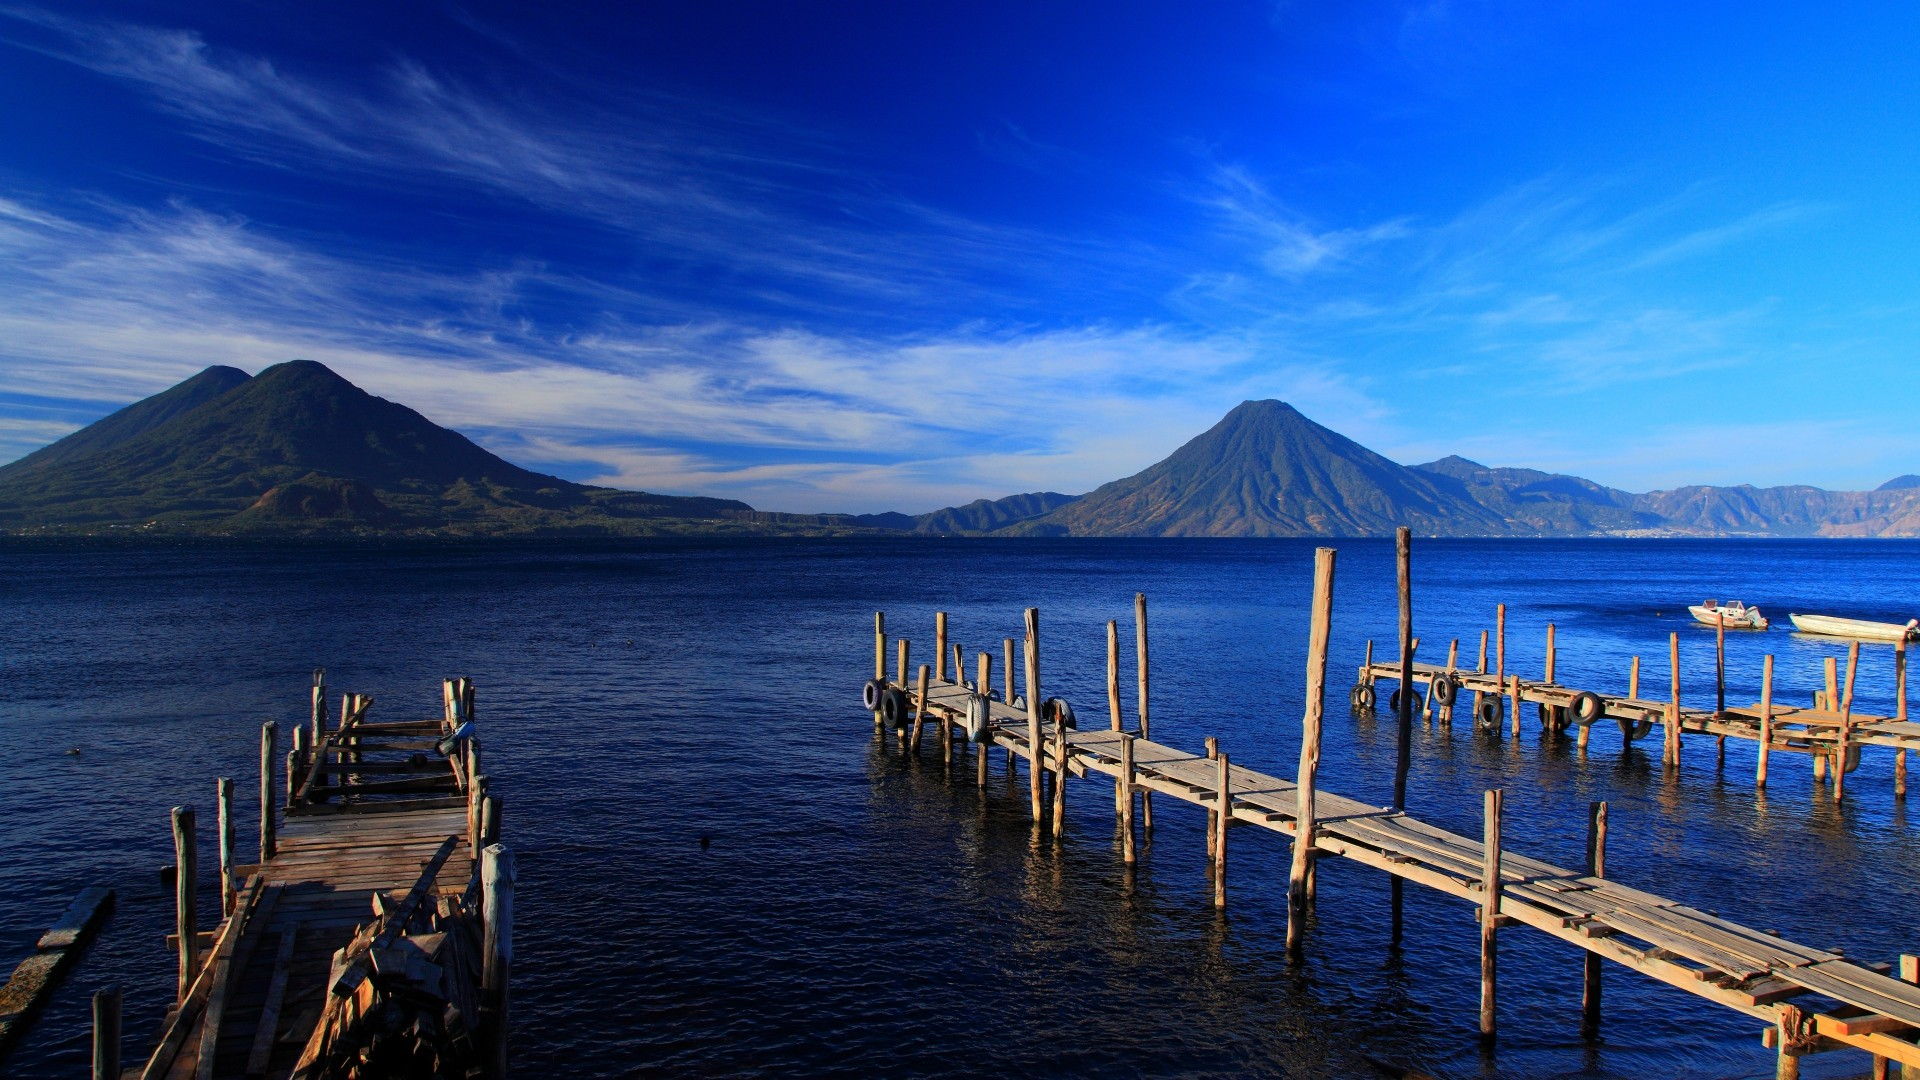 … Background Full HD 1080p. Wallpaper guatemala, island,  mountain, beach